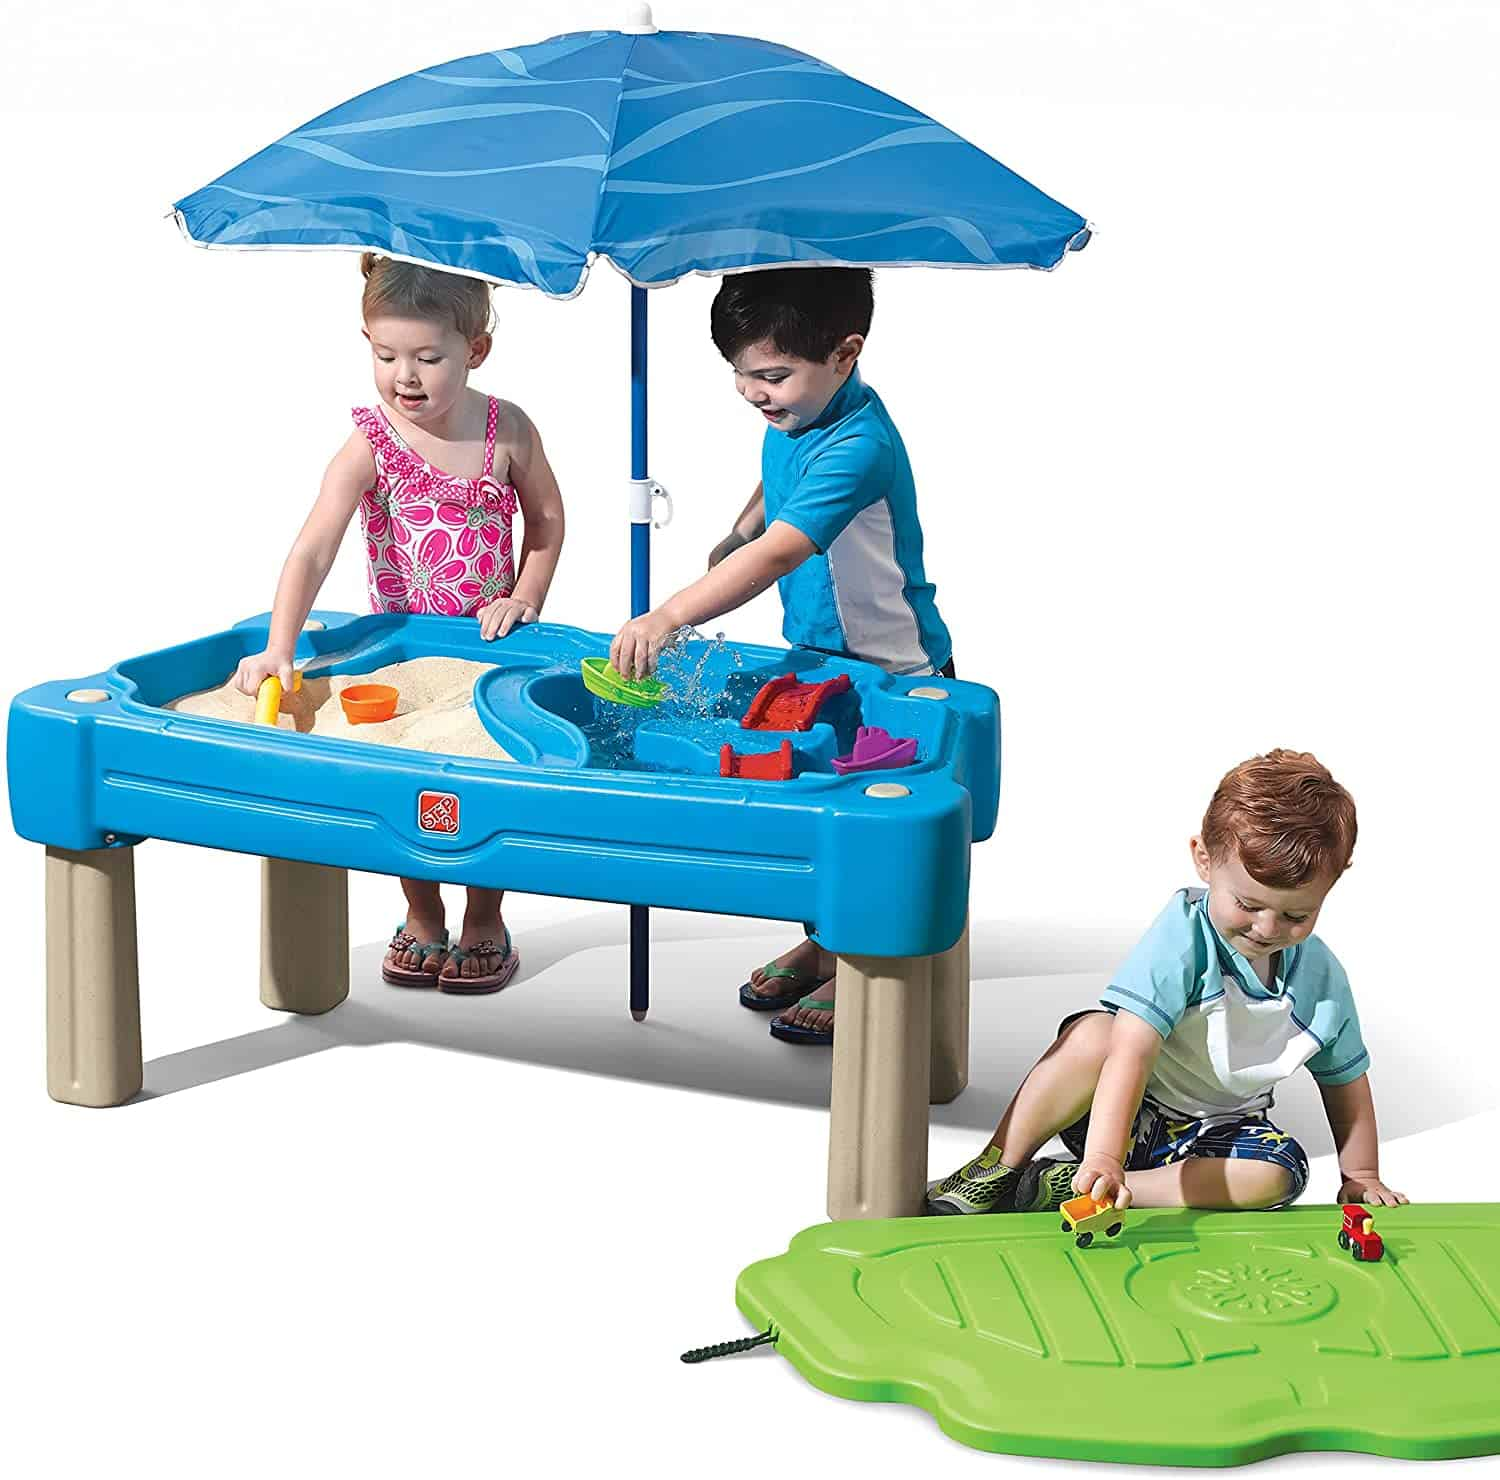 sand and water table outdoor toys for toddlers